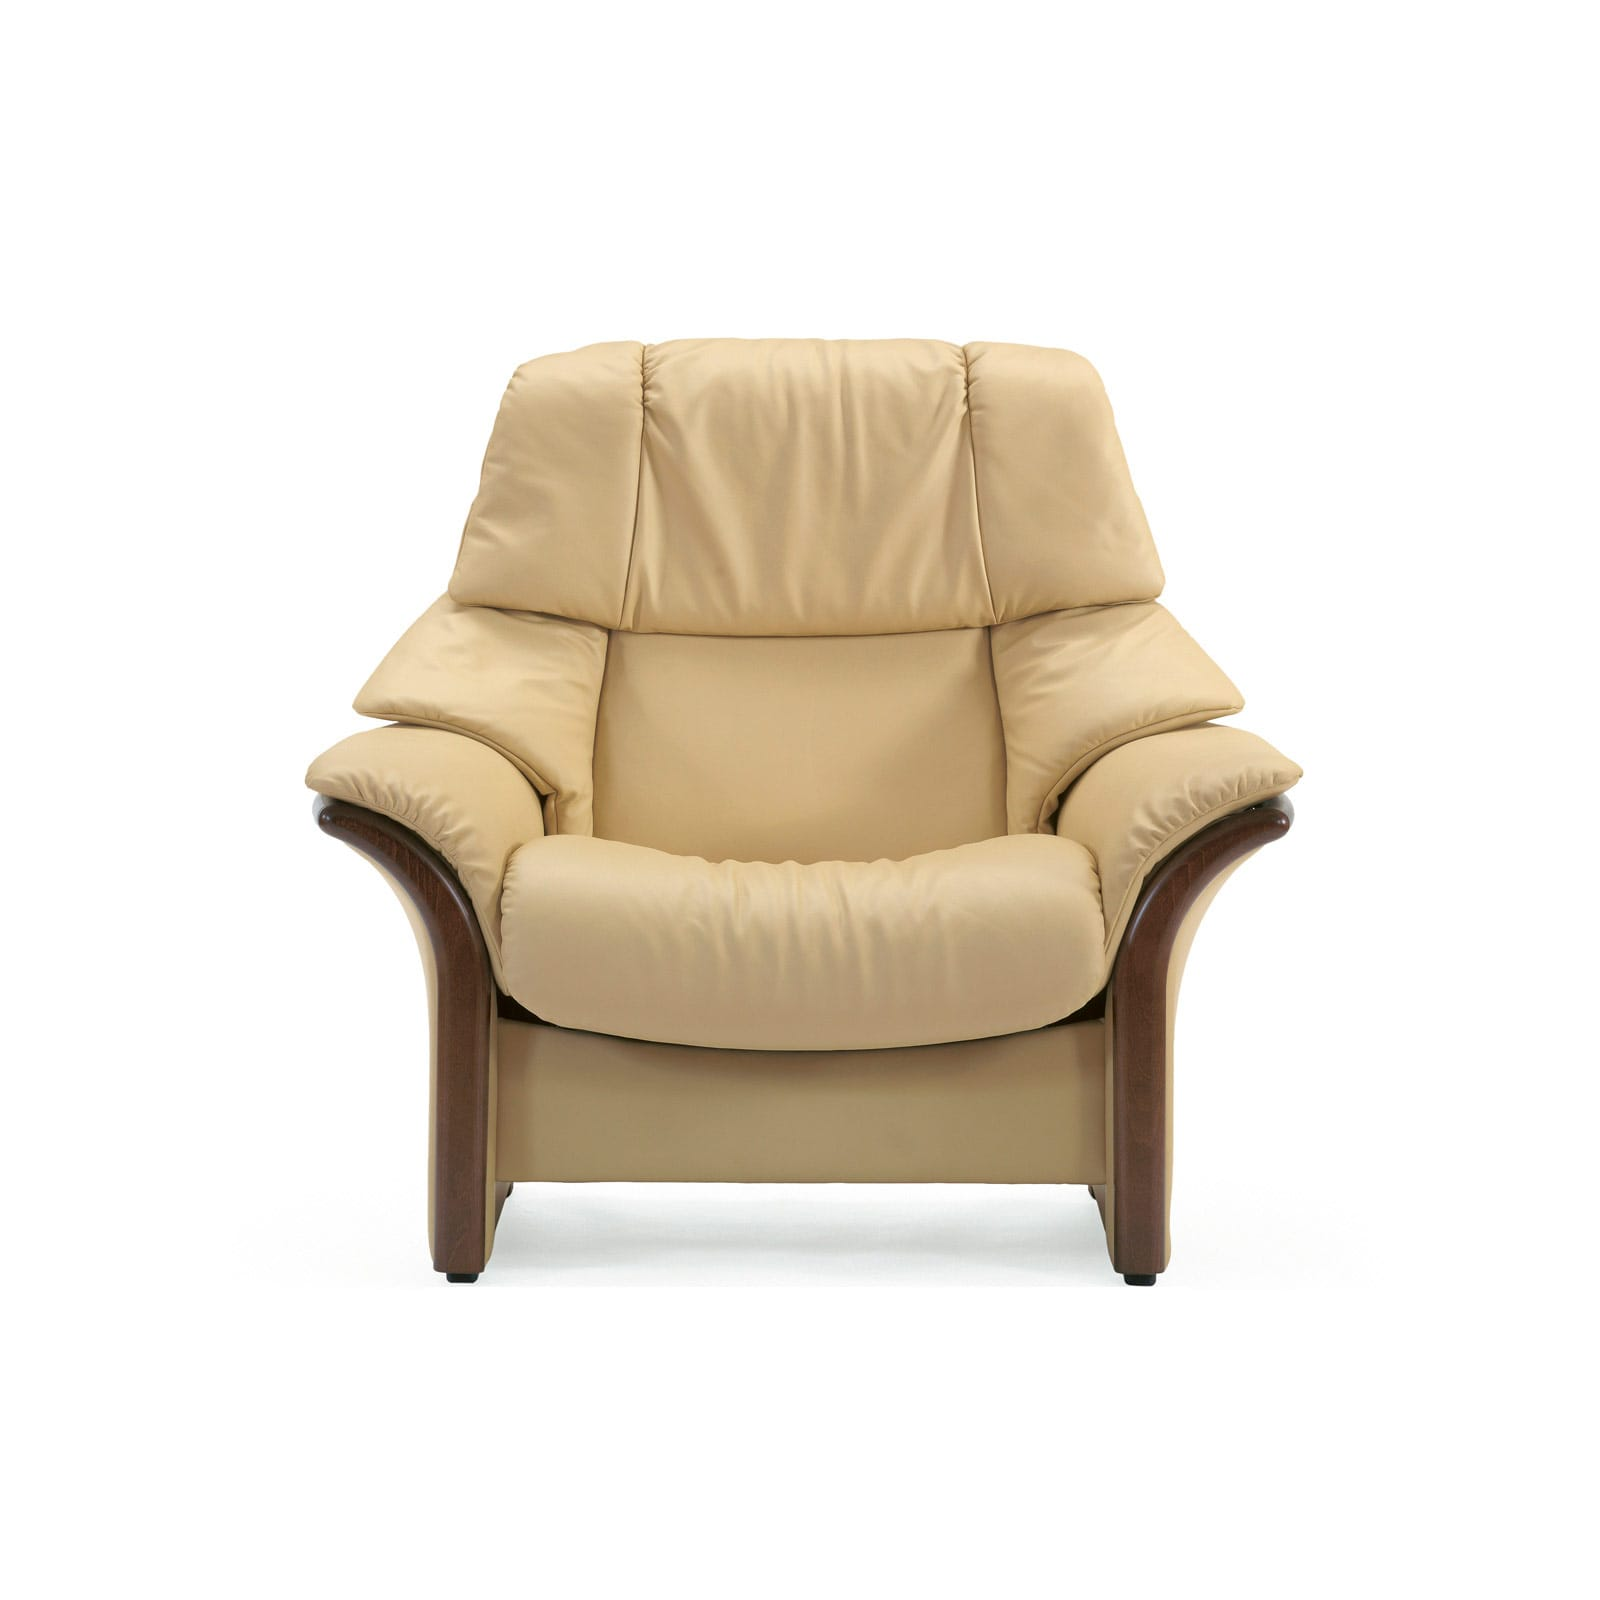 Stressless sessel eldorado m hoch sand braun for Comfort house